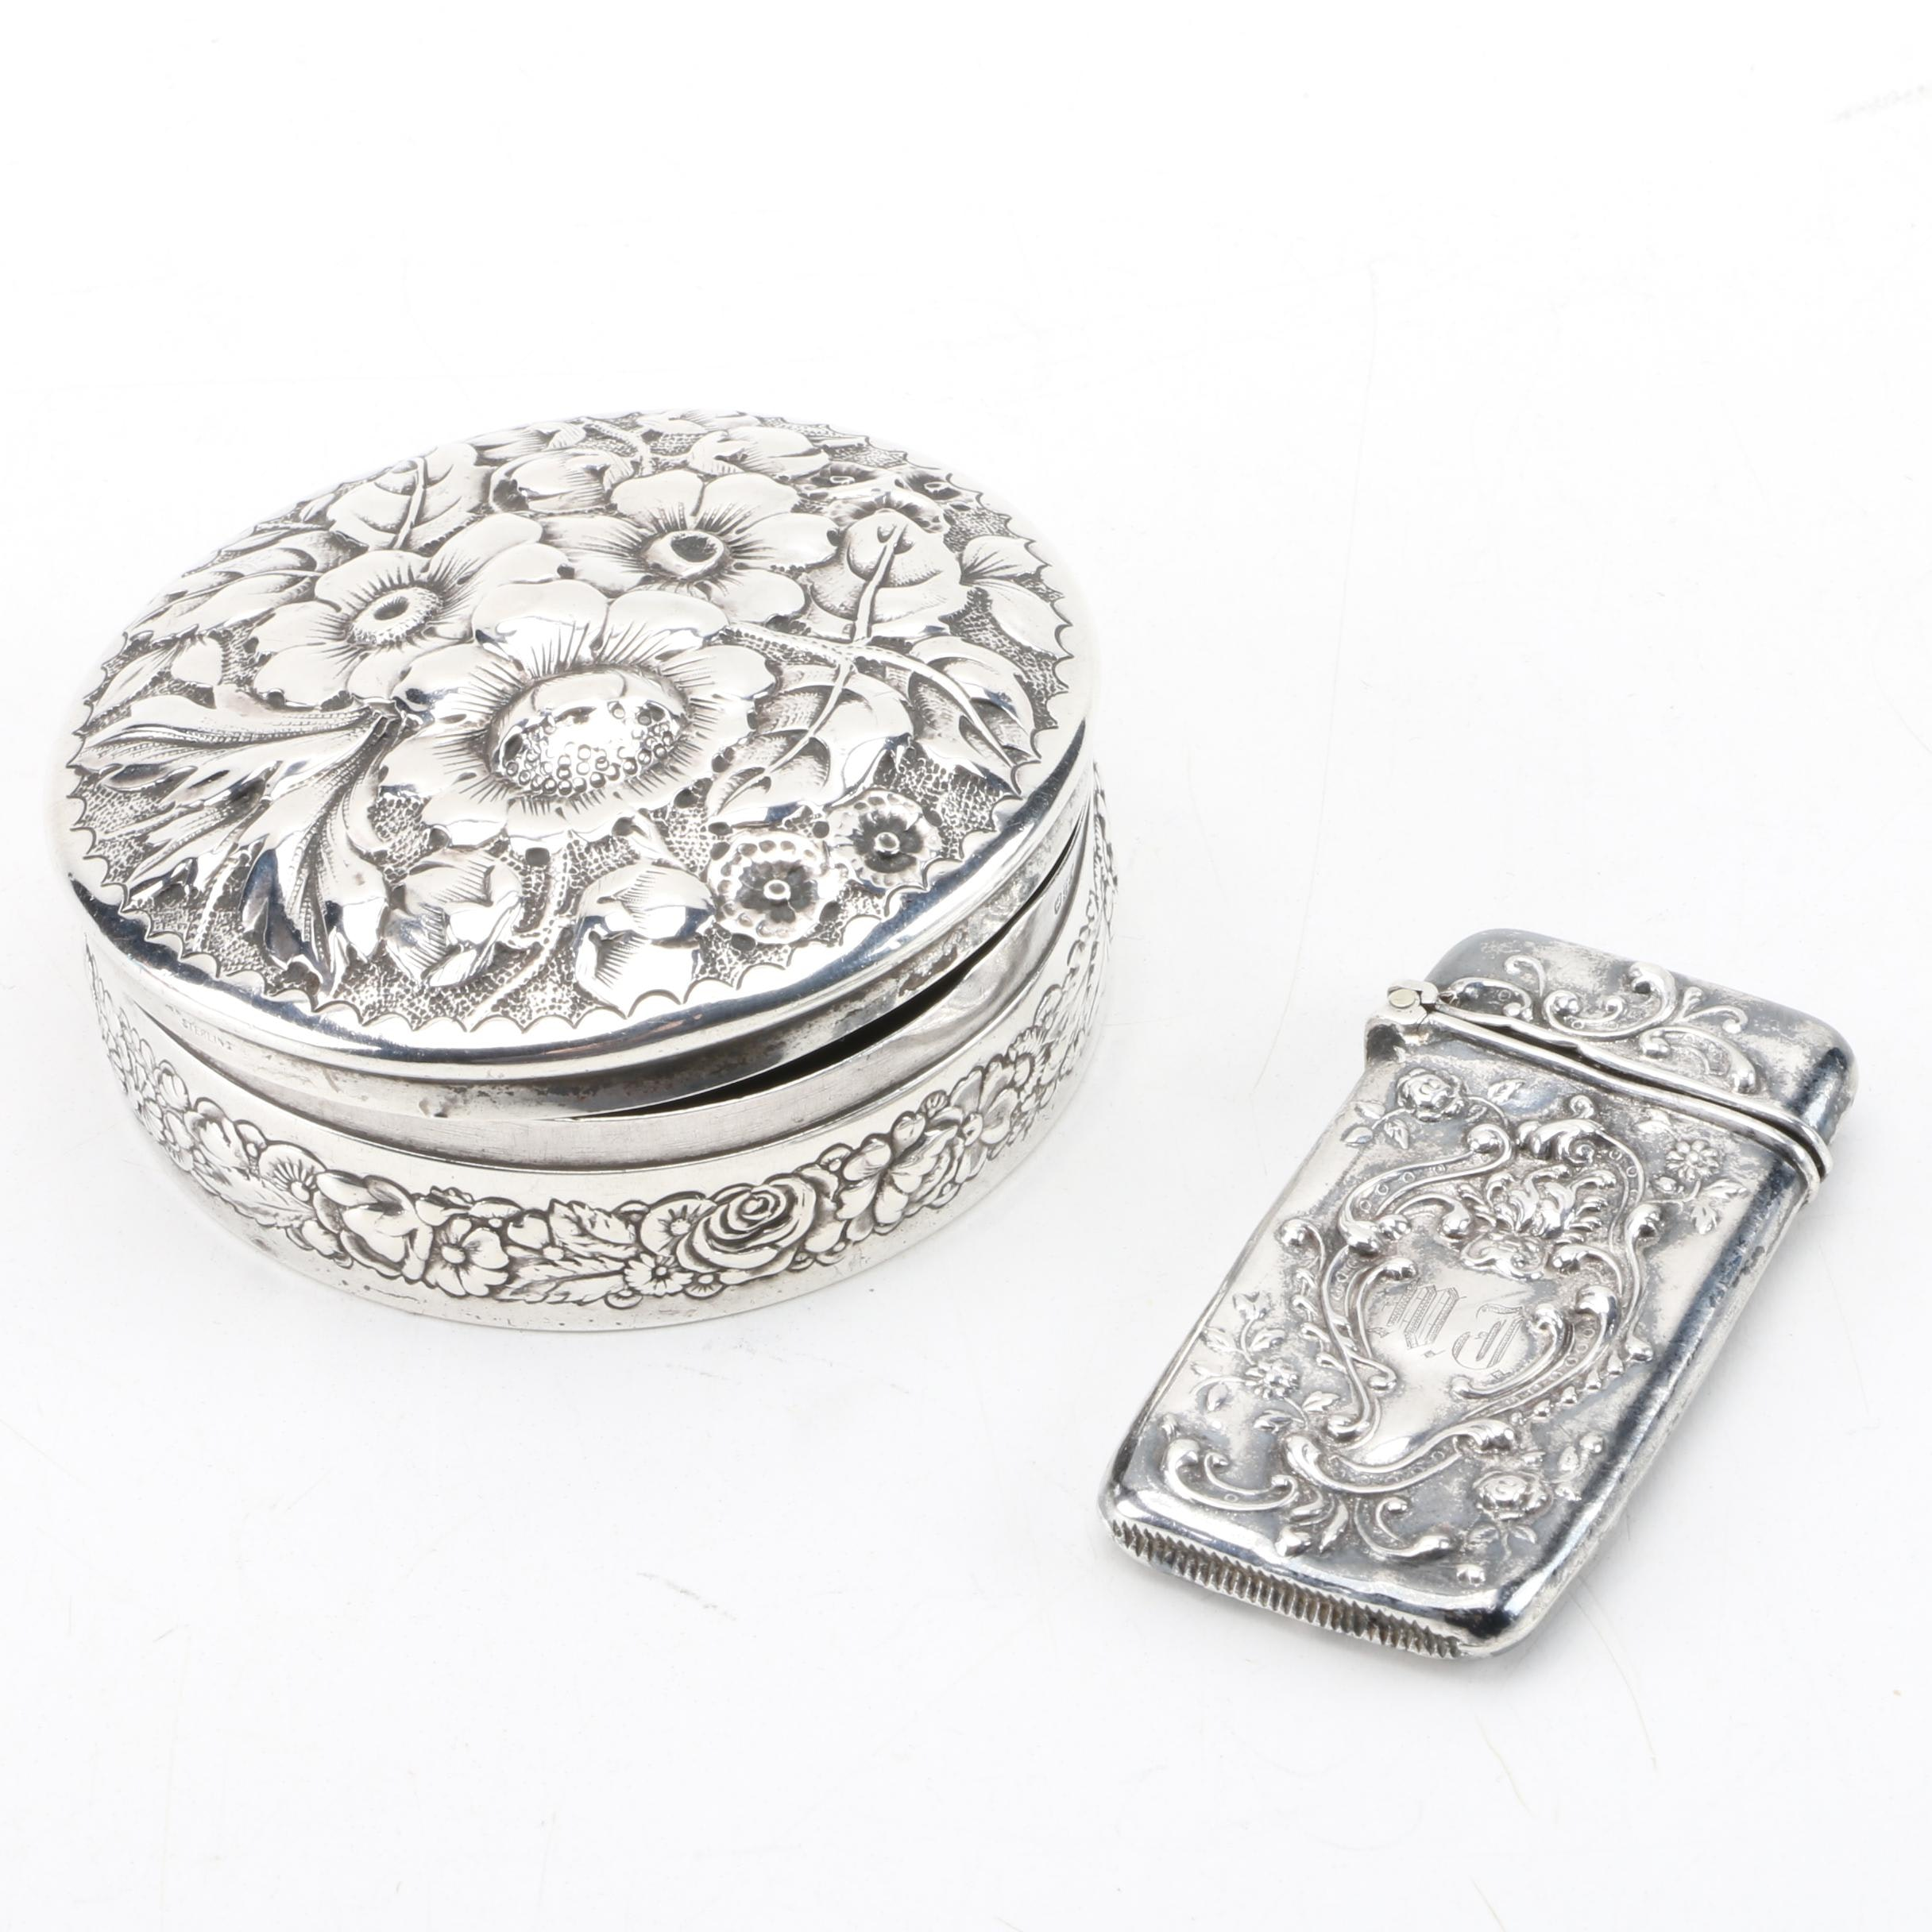 Gorham Repoussé Sterling Silver Trinket Box with Sterling Match Case